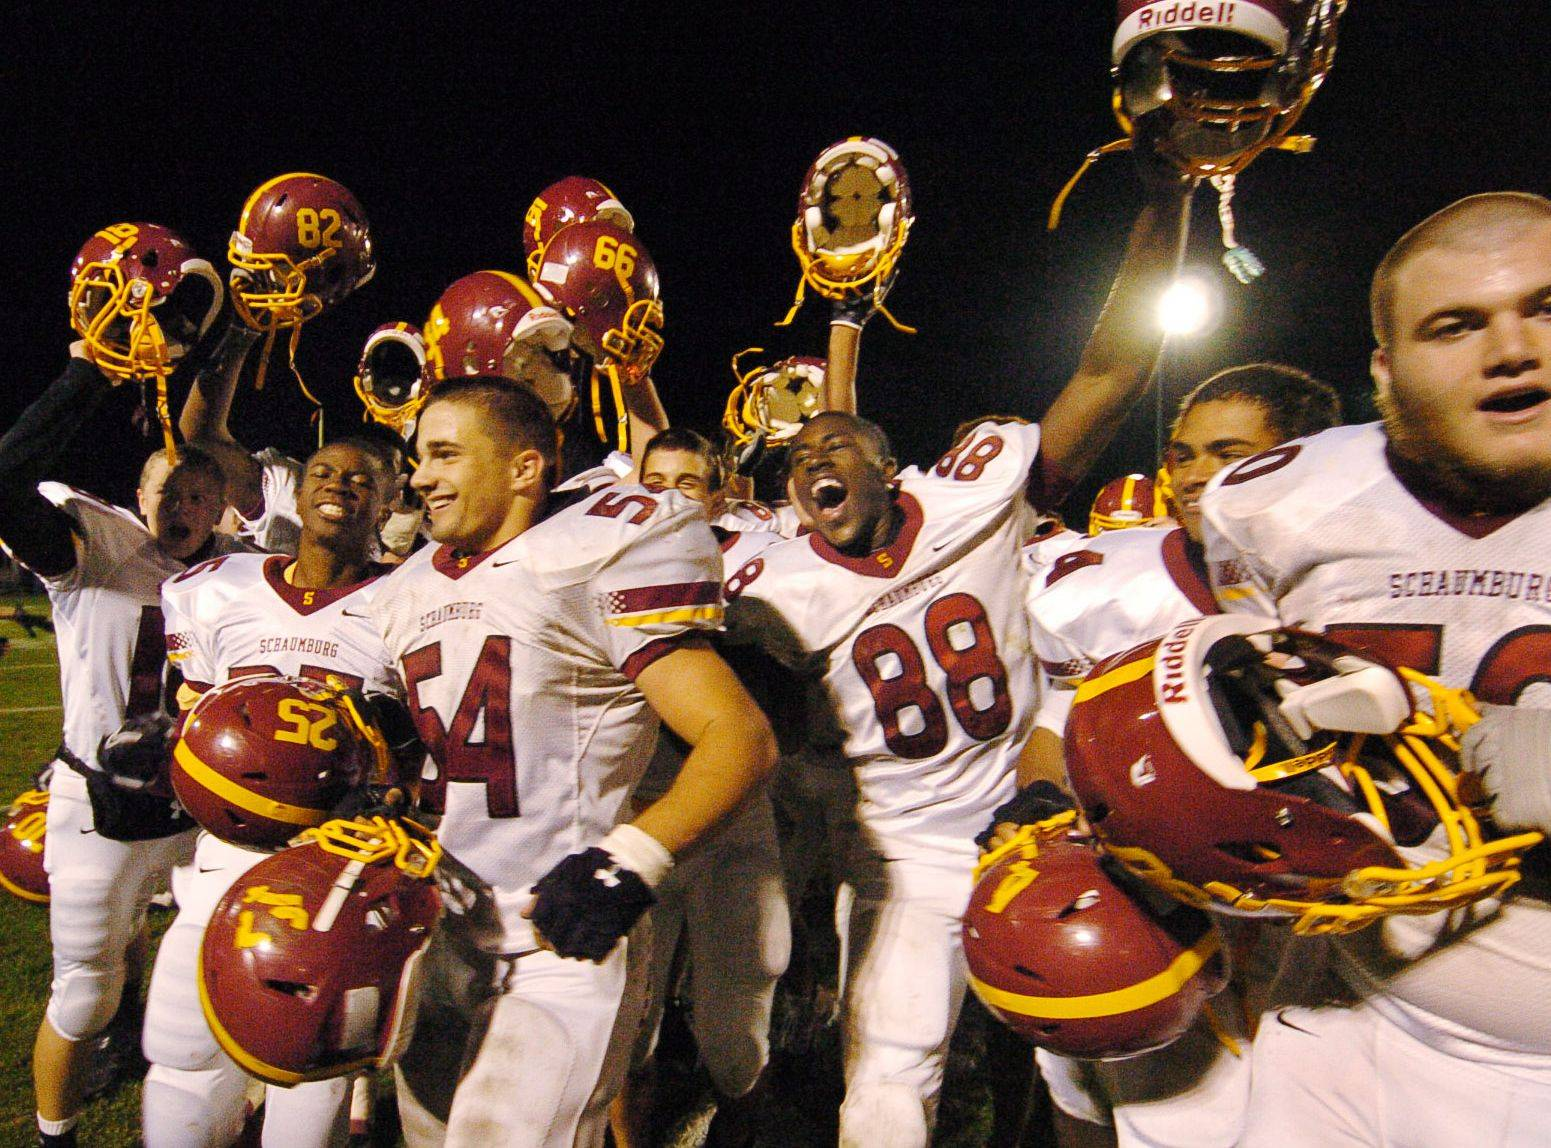 Schaumburg celebrates after defeating Elk Grove in first-round playoff football.Bob Chwedyk/bchwedyk@dailyherald.com Playoffs - Round One - Photos from the Elk Grove vs Schaumburg game on Saturday, October 30th in Elk Grove.